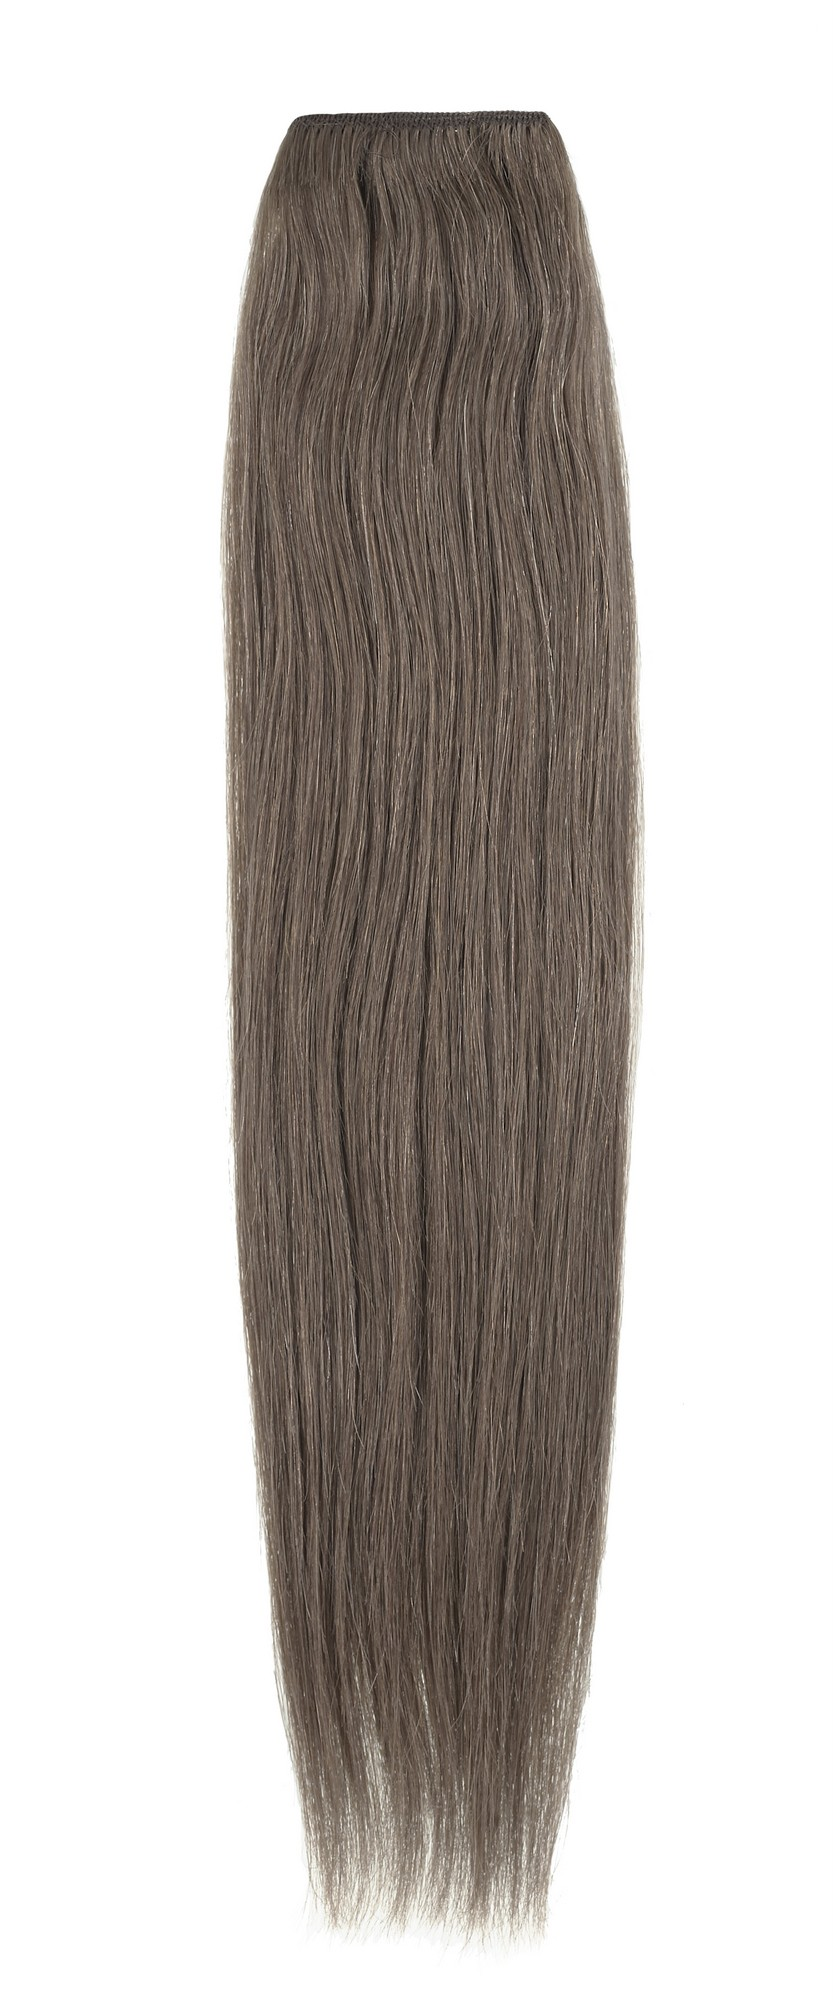 859bbd884585 Human Hair Extensions - Original Grade Straight Hair Extensions